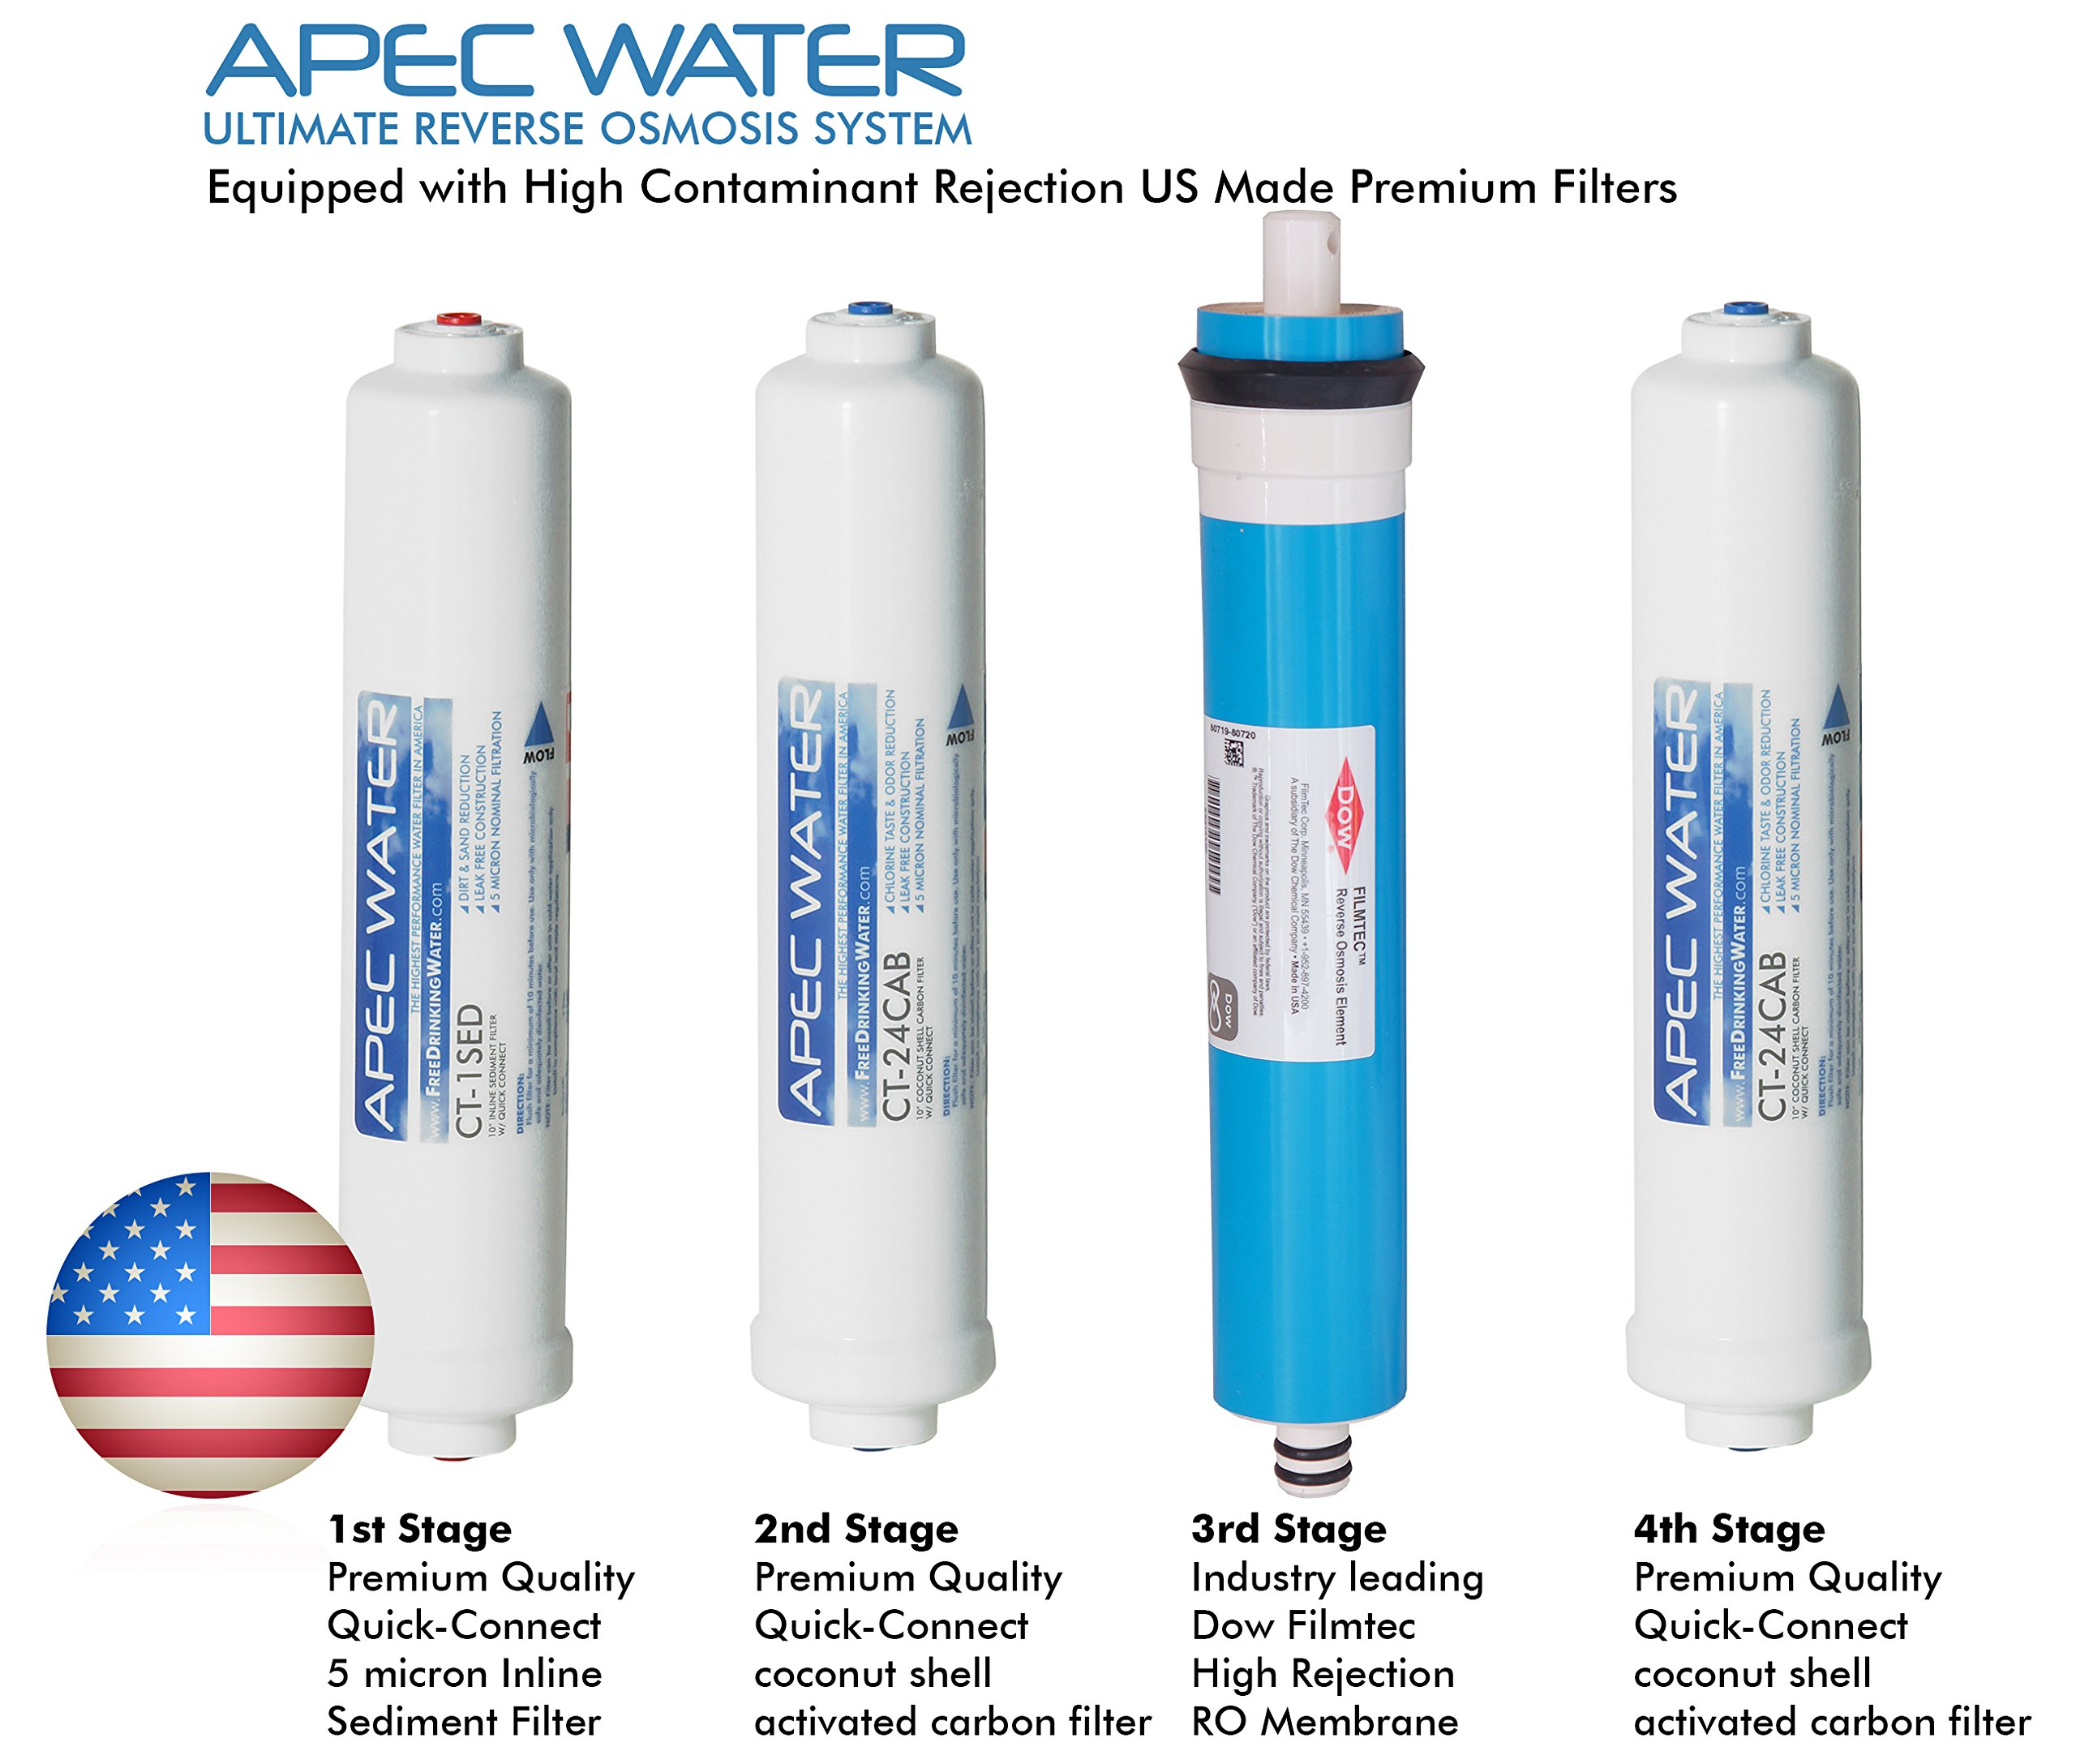 APEC Portable Countertop Reverse Osmosis Water Filter System With Case, Installation-Free, Fits Most STANDARD FAUCET (RO-CTOP-C) by APEC Water Systems (Image #6)